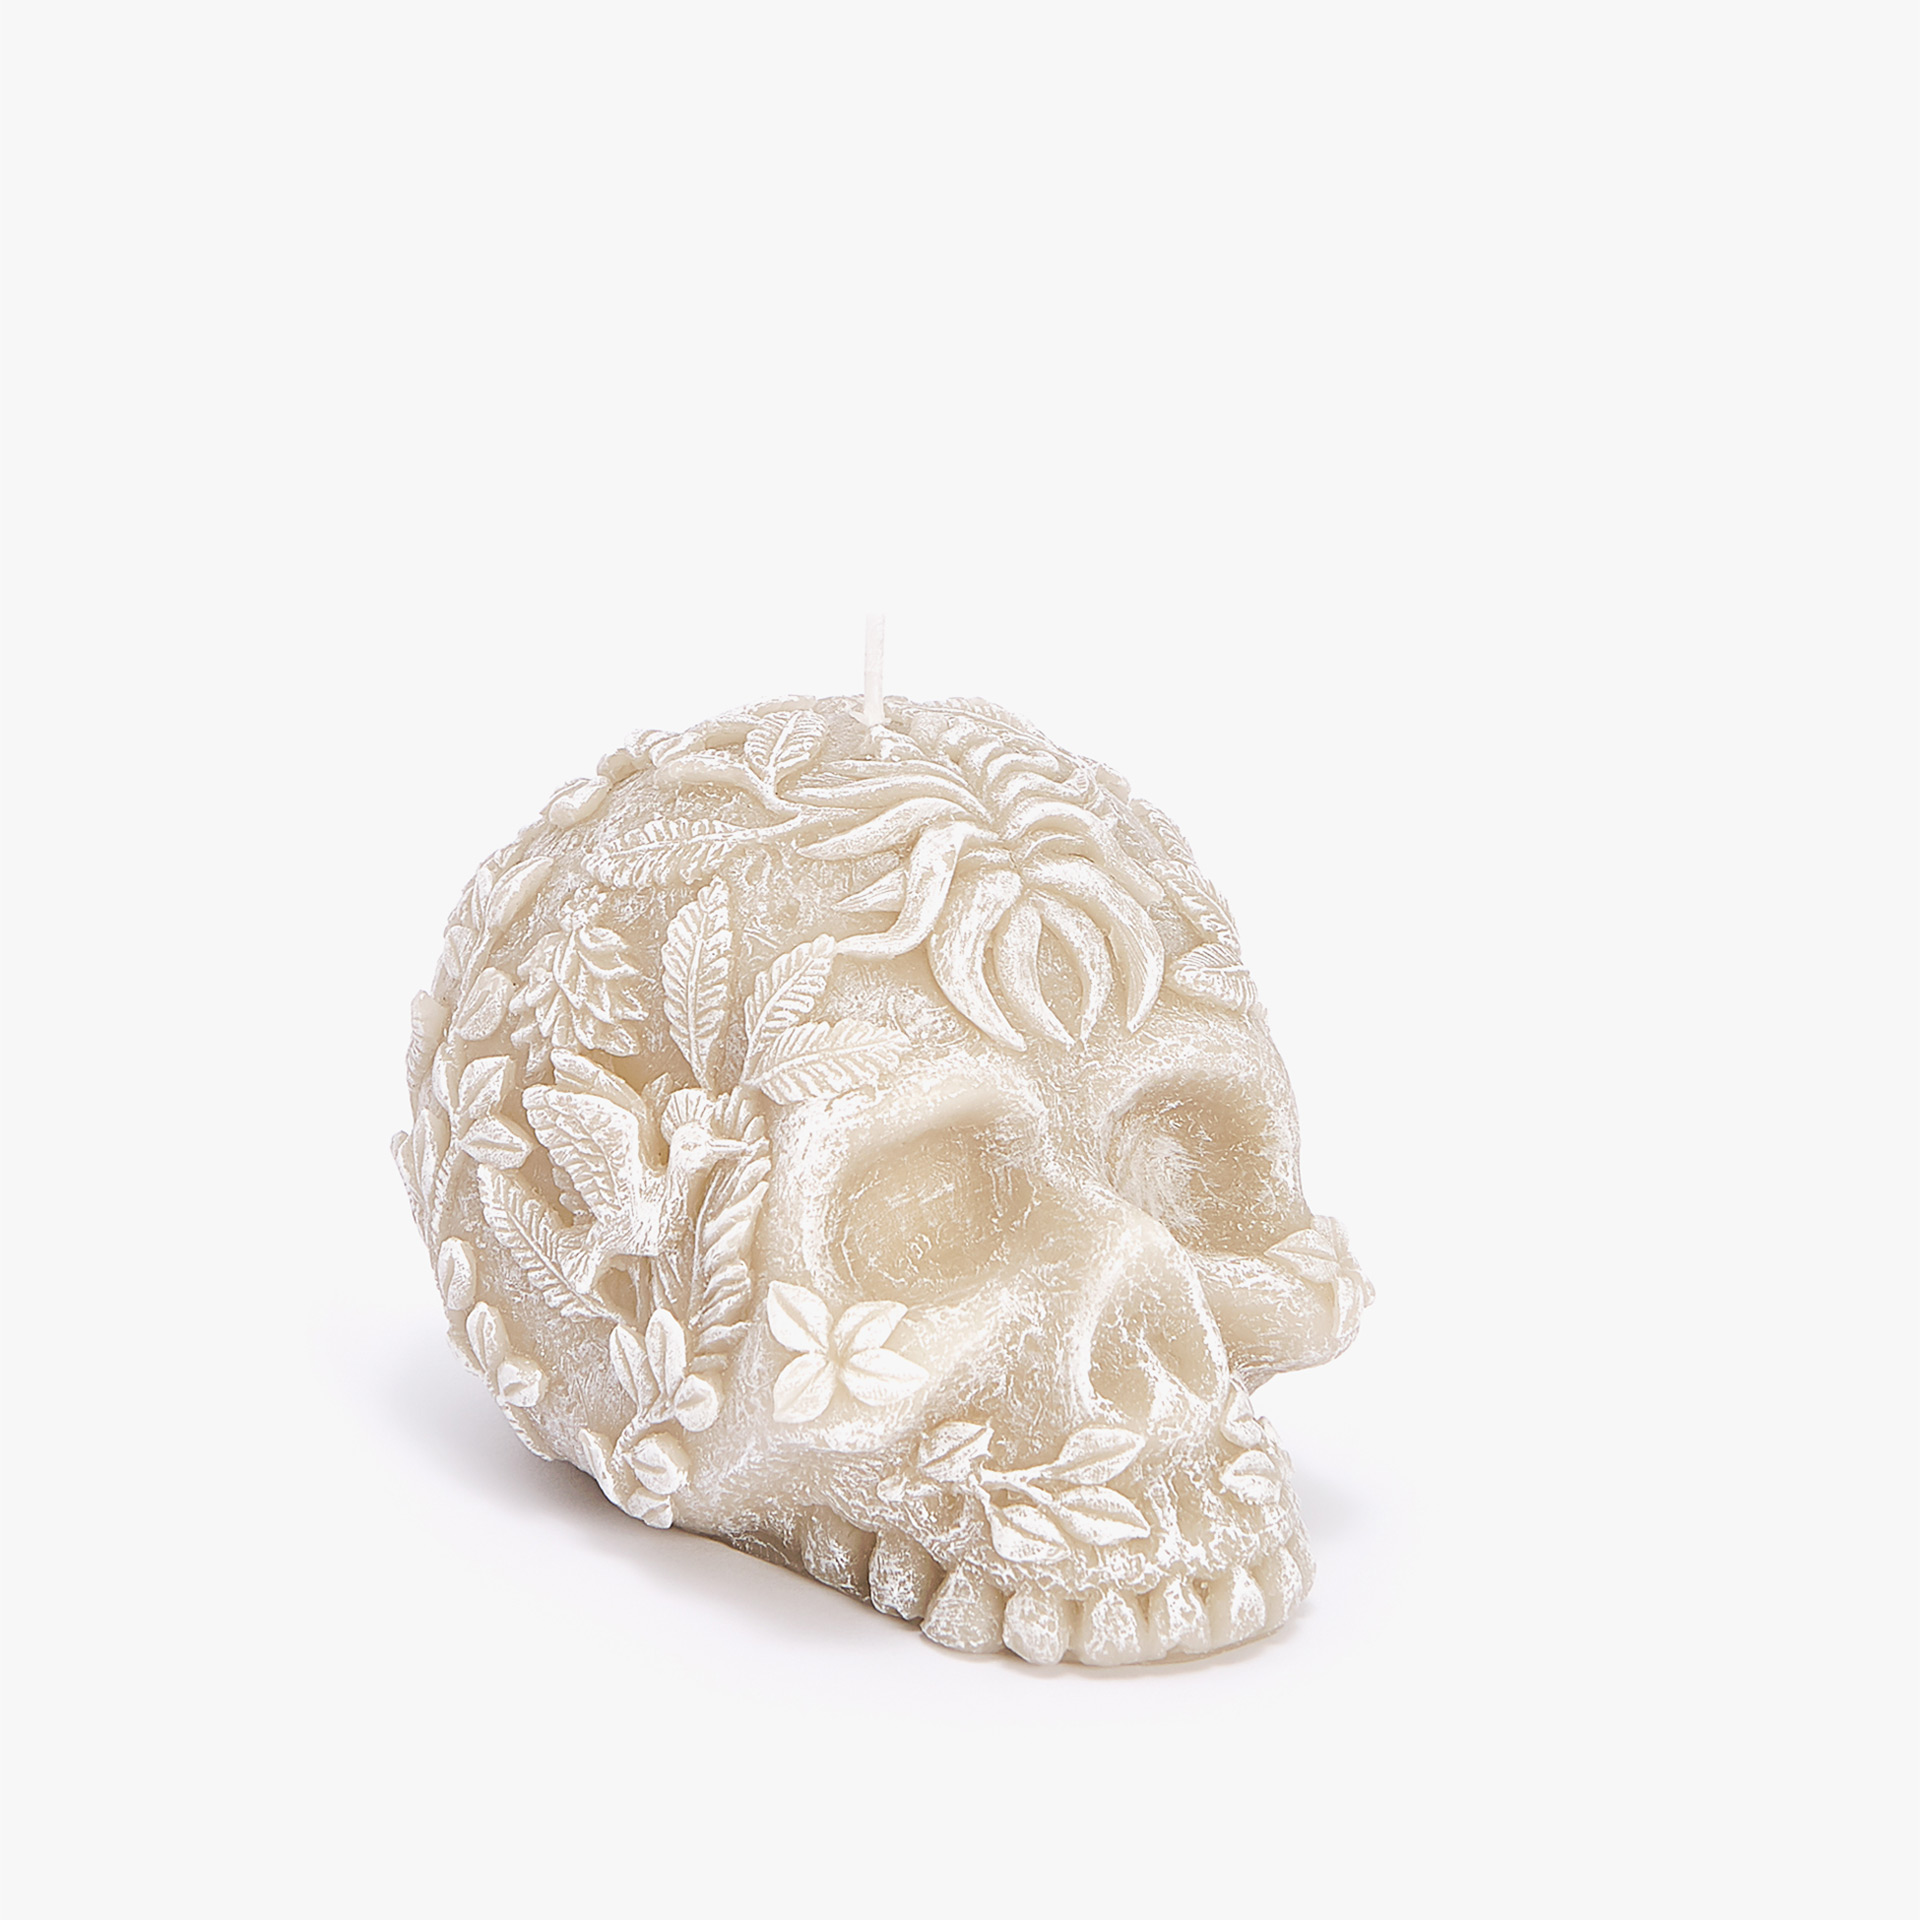 SKULL-SHAPED CANDLE